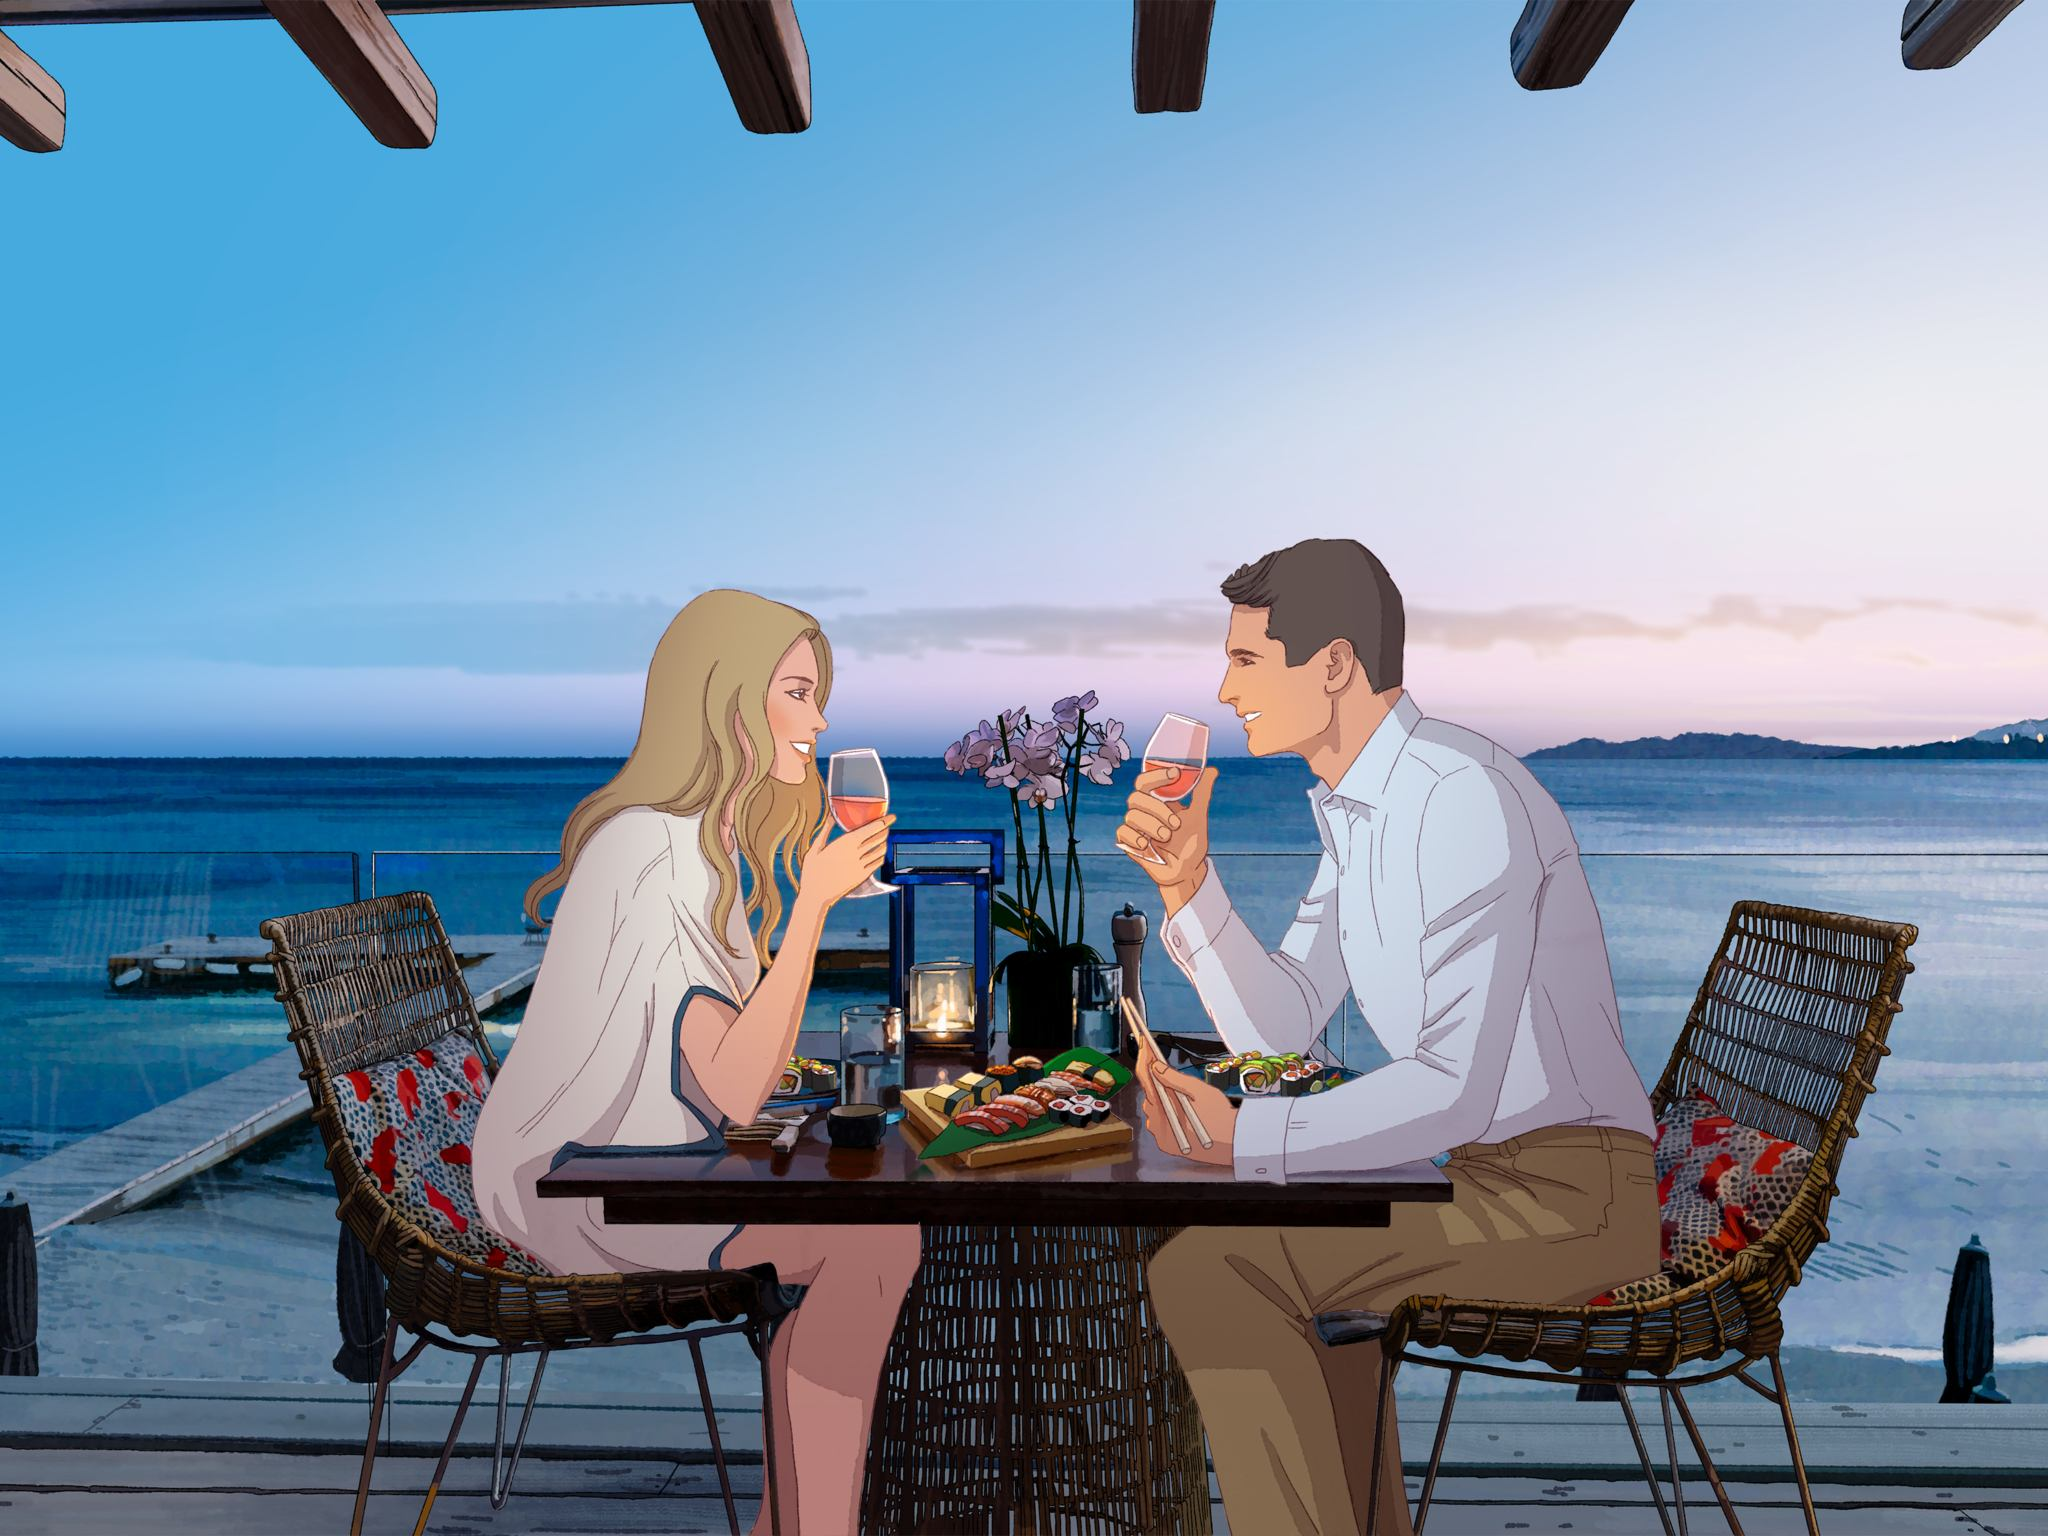 illustrated sitting man and woman about to drink beverage in drinking glasses near body of water